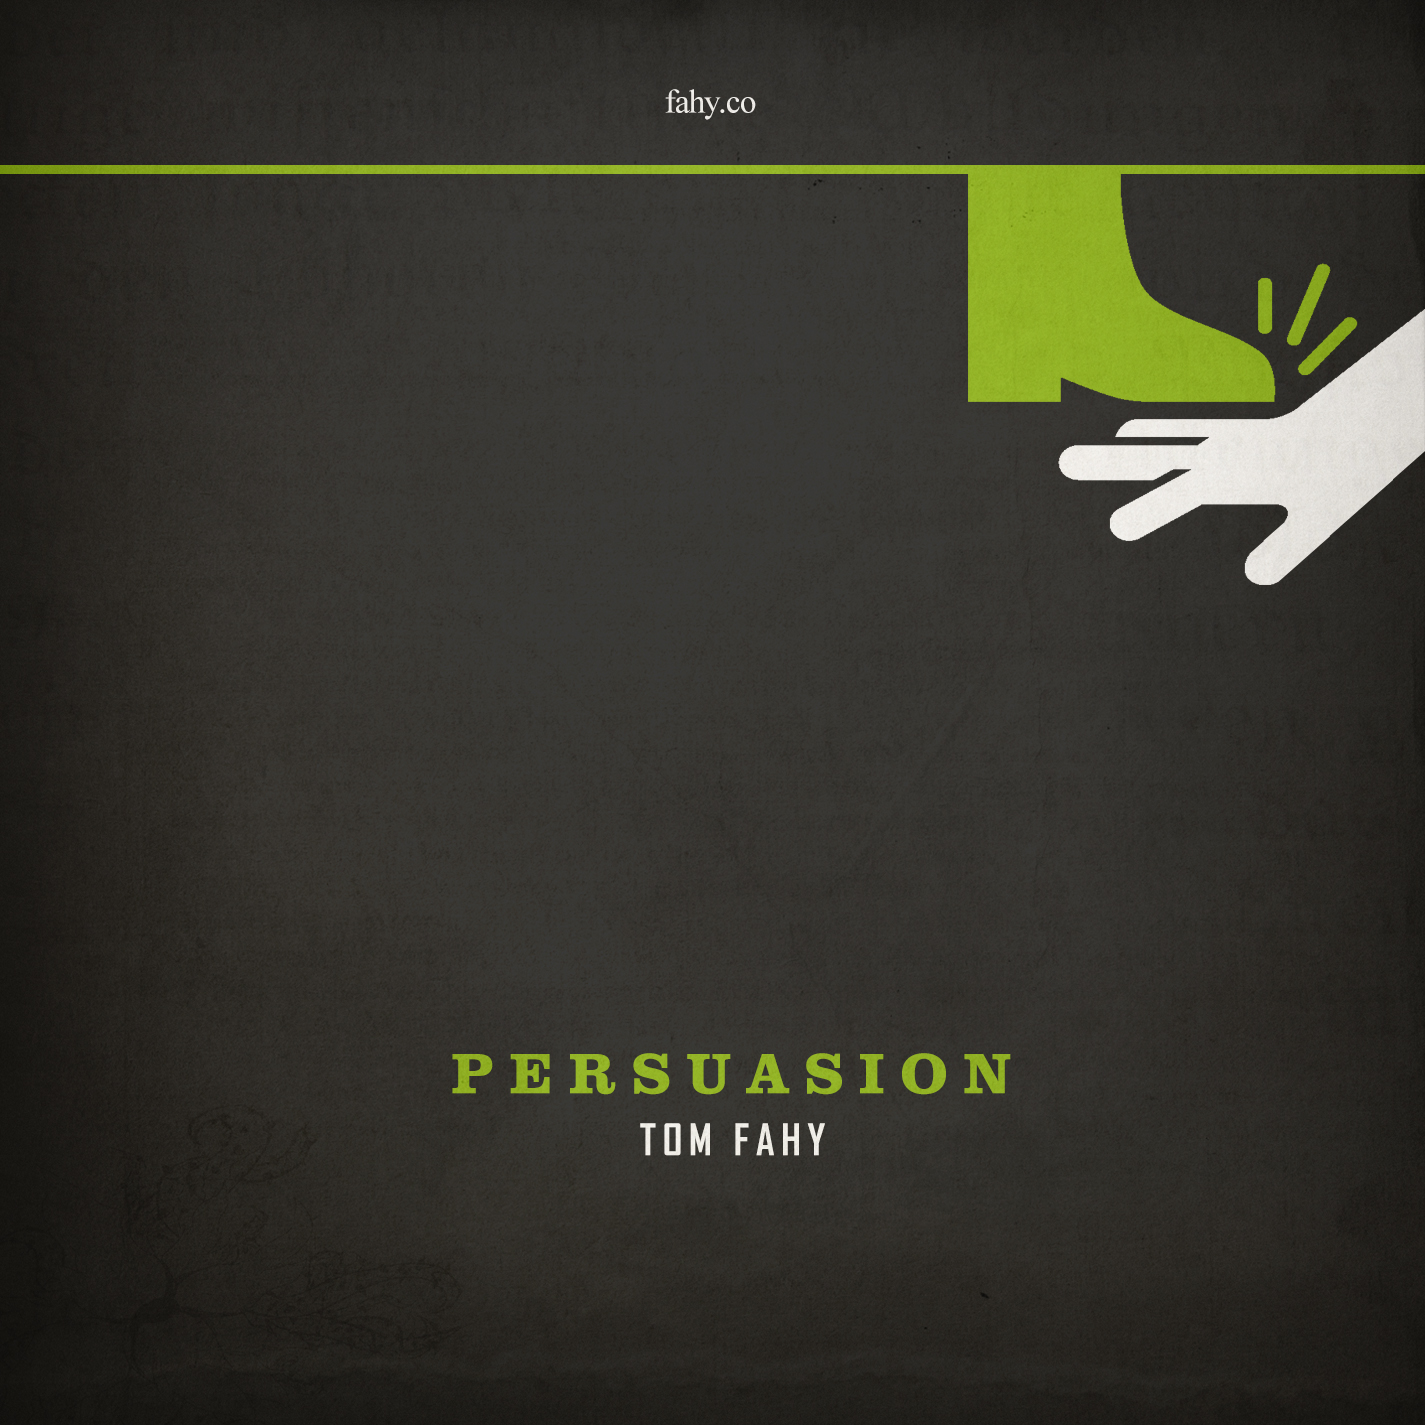 Persuasion, by Tom Fahy (2009)